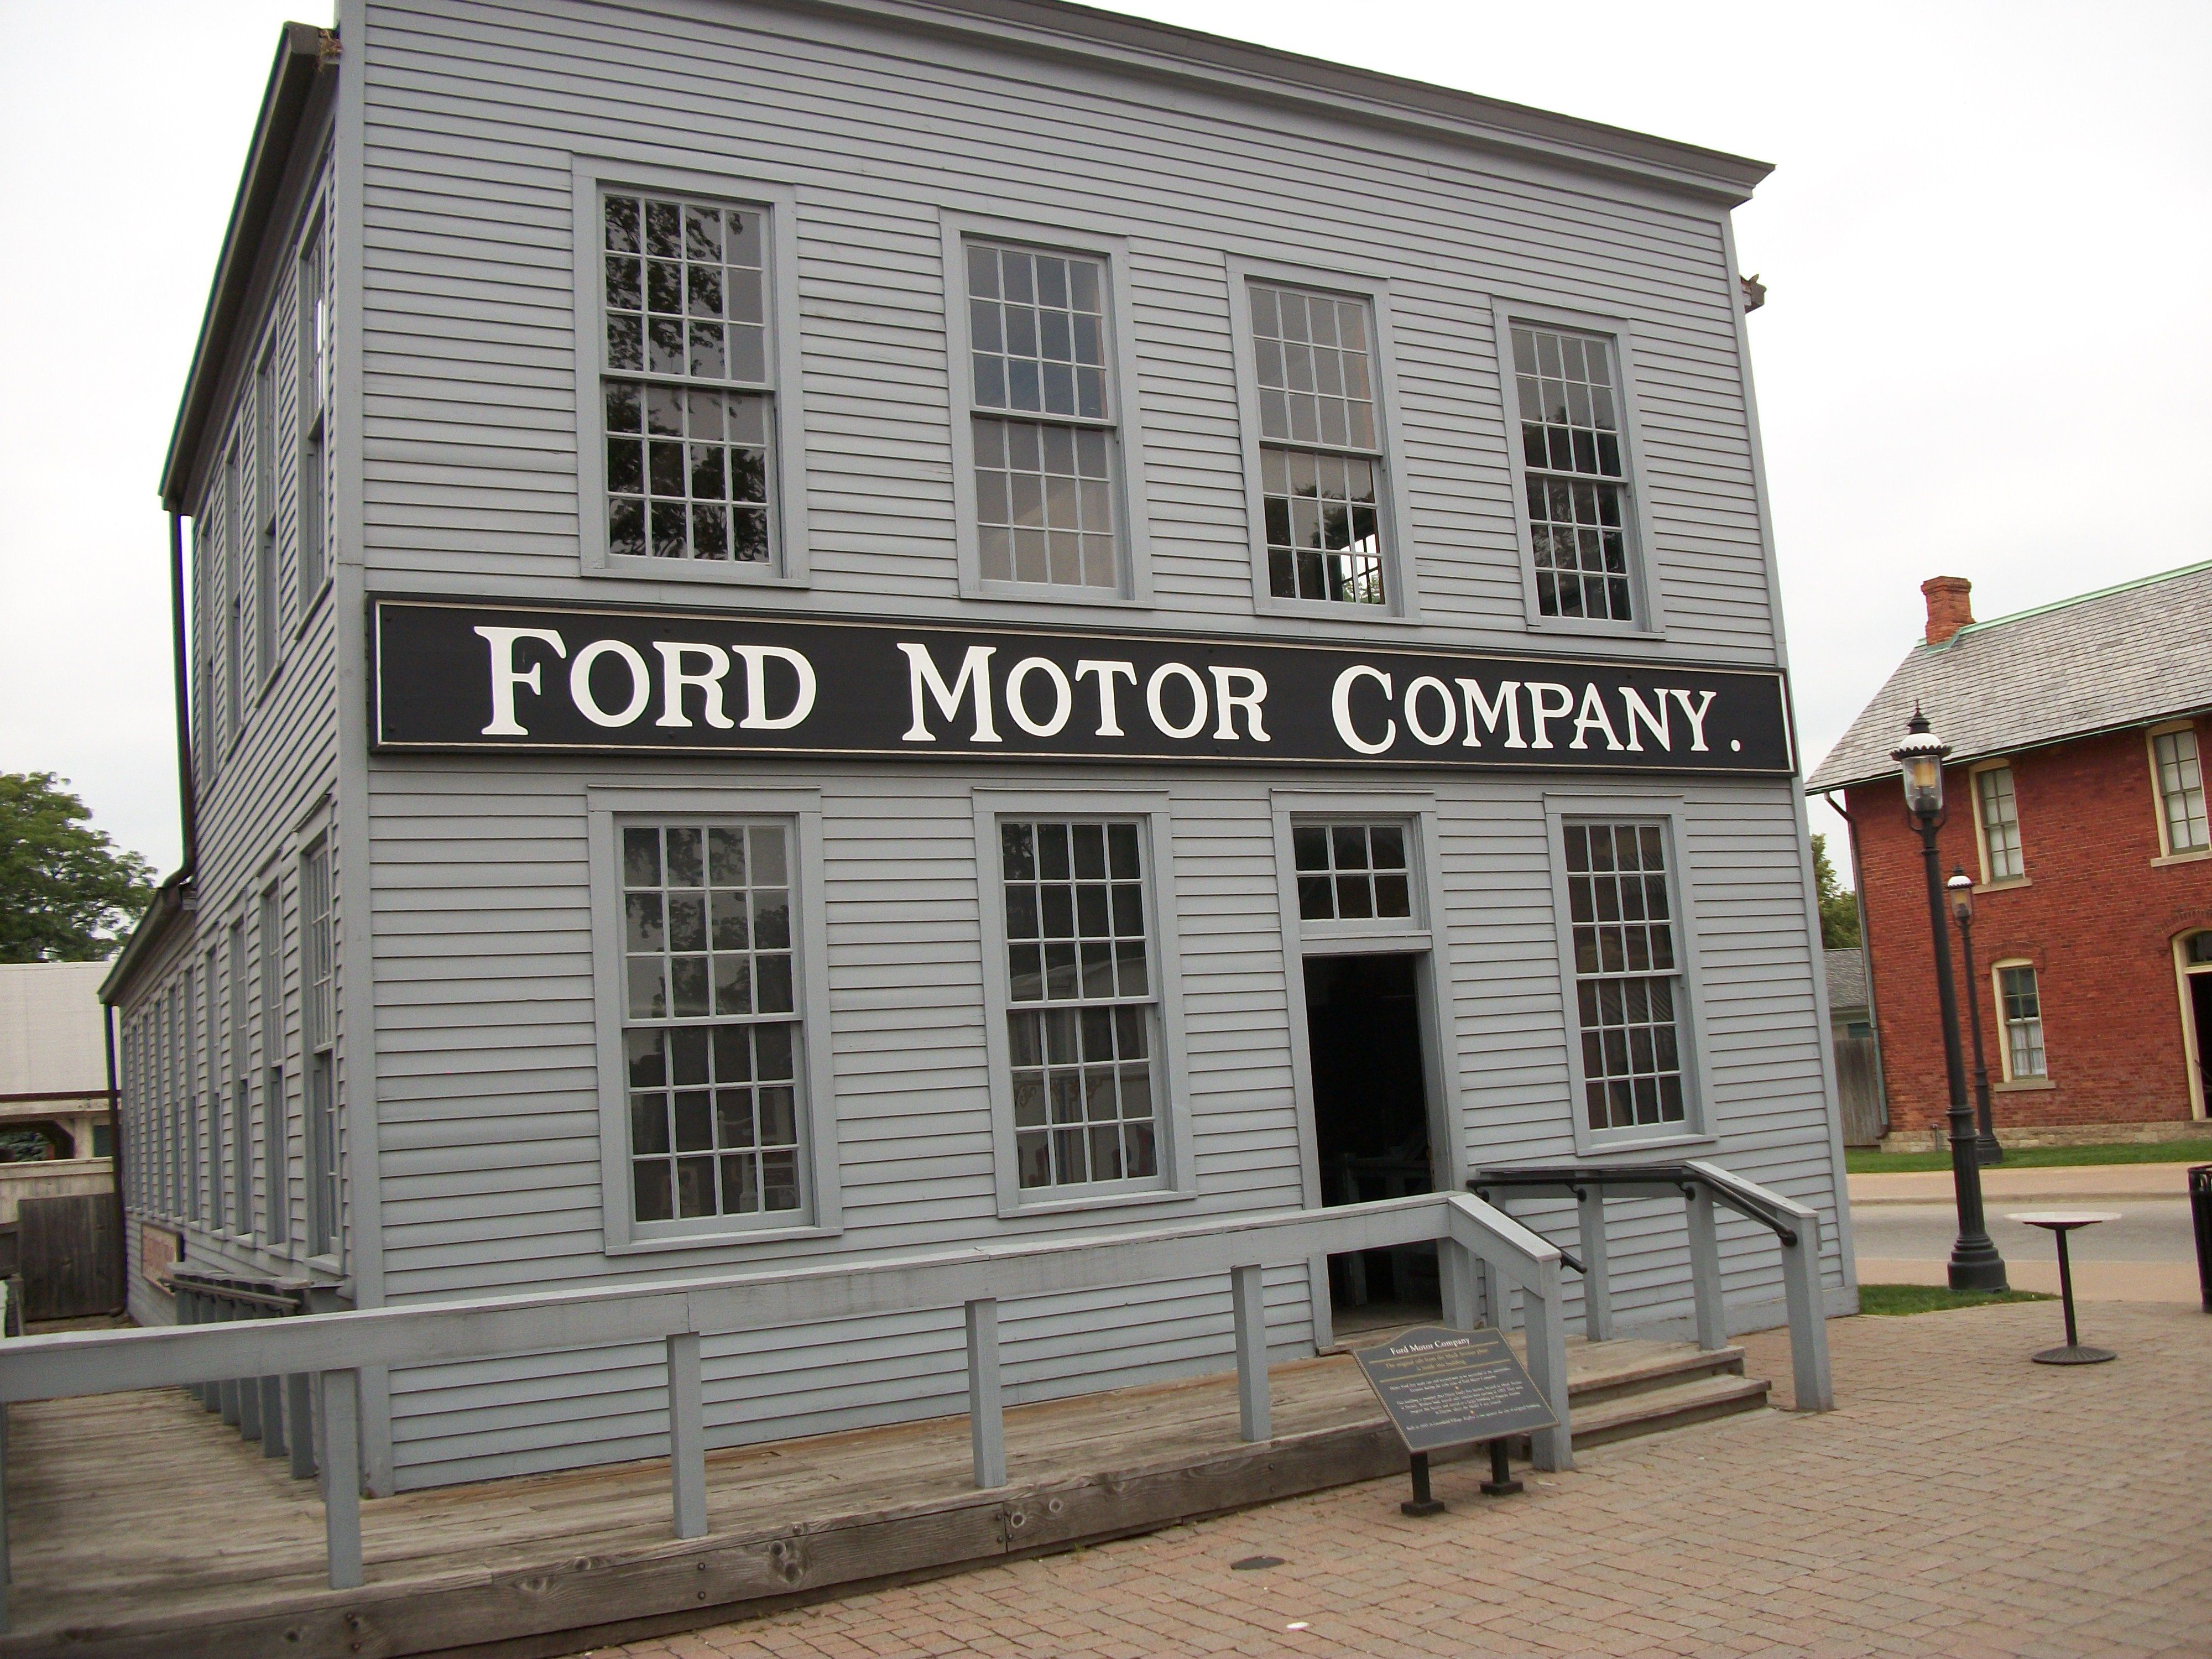 Ford motor company mack avenue plant at greenfield village for Ford motor company museum